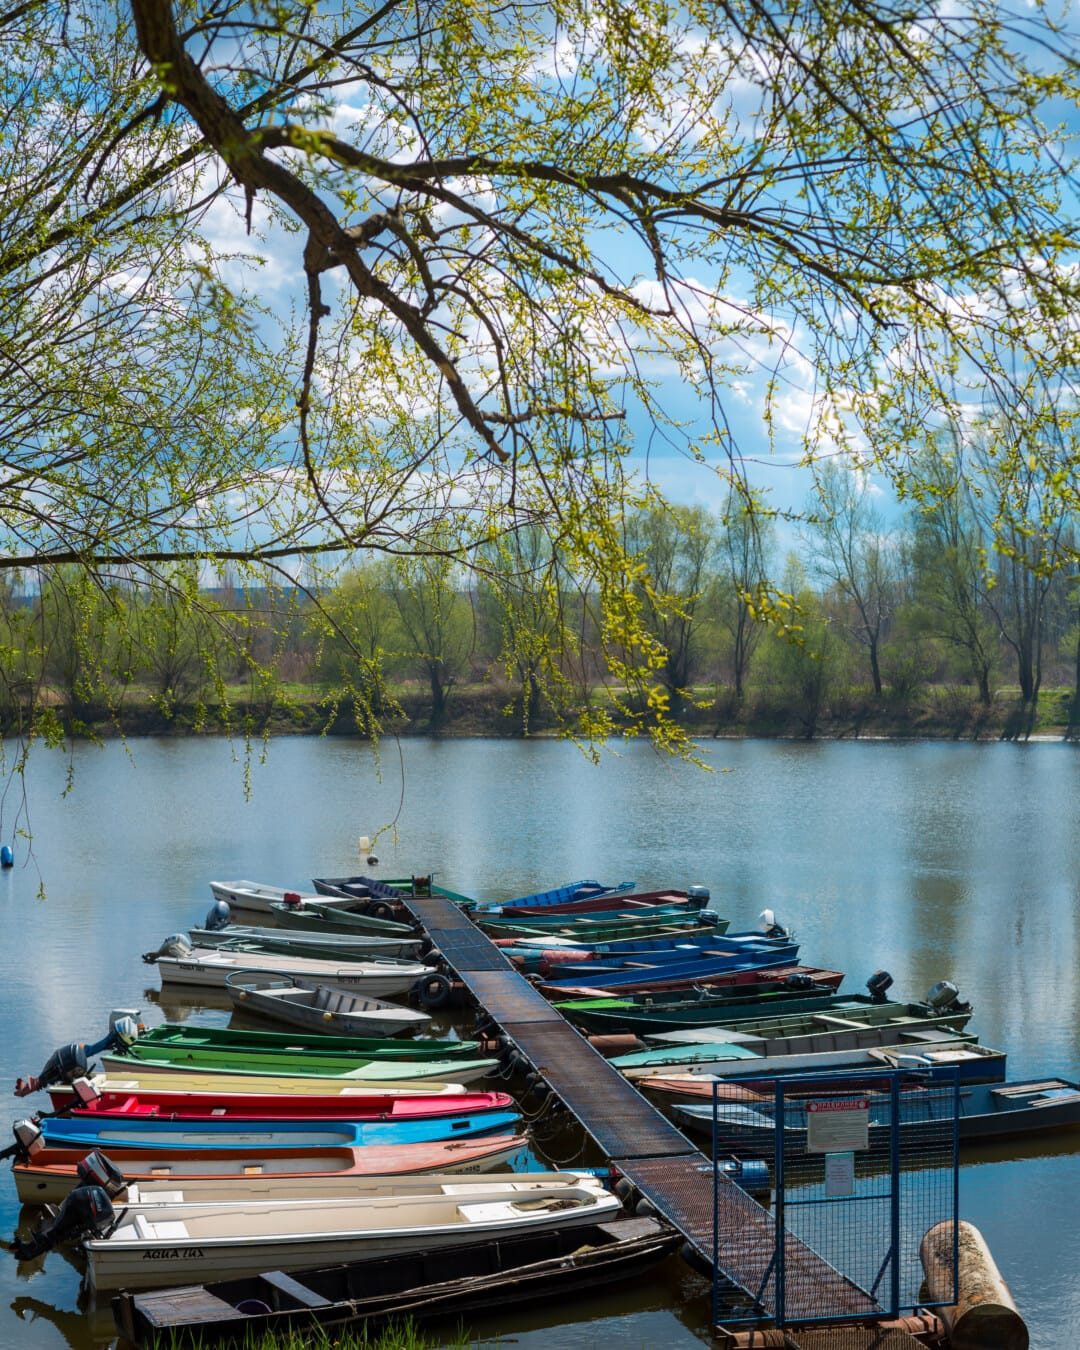 river boat, pier, motorboat, boats, spring time, lakeside, boat, lake, water, outdoors